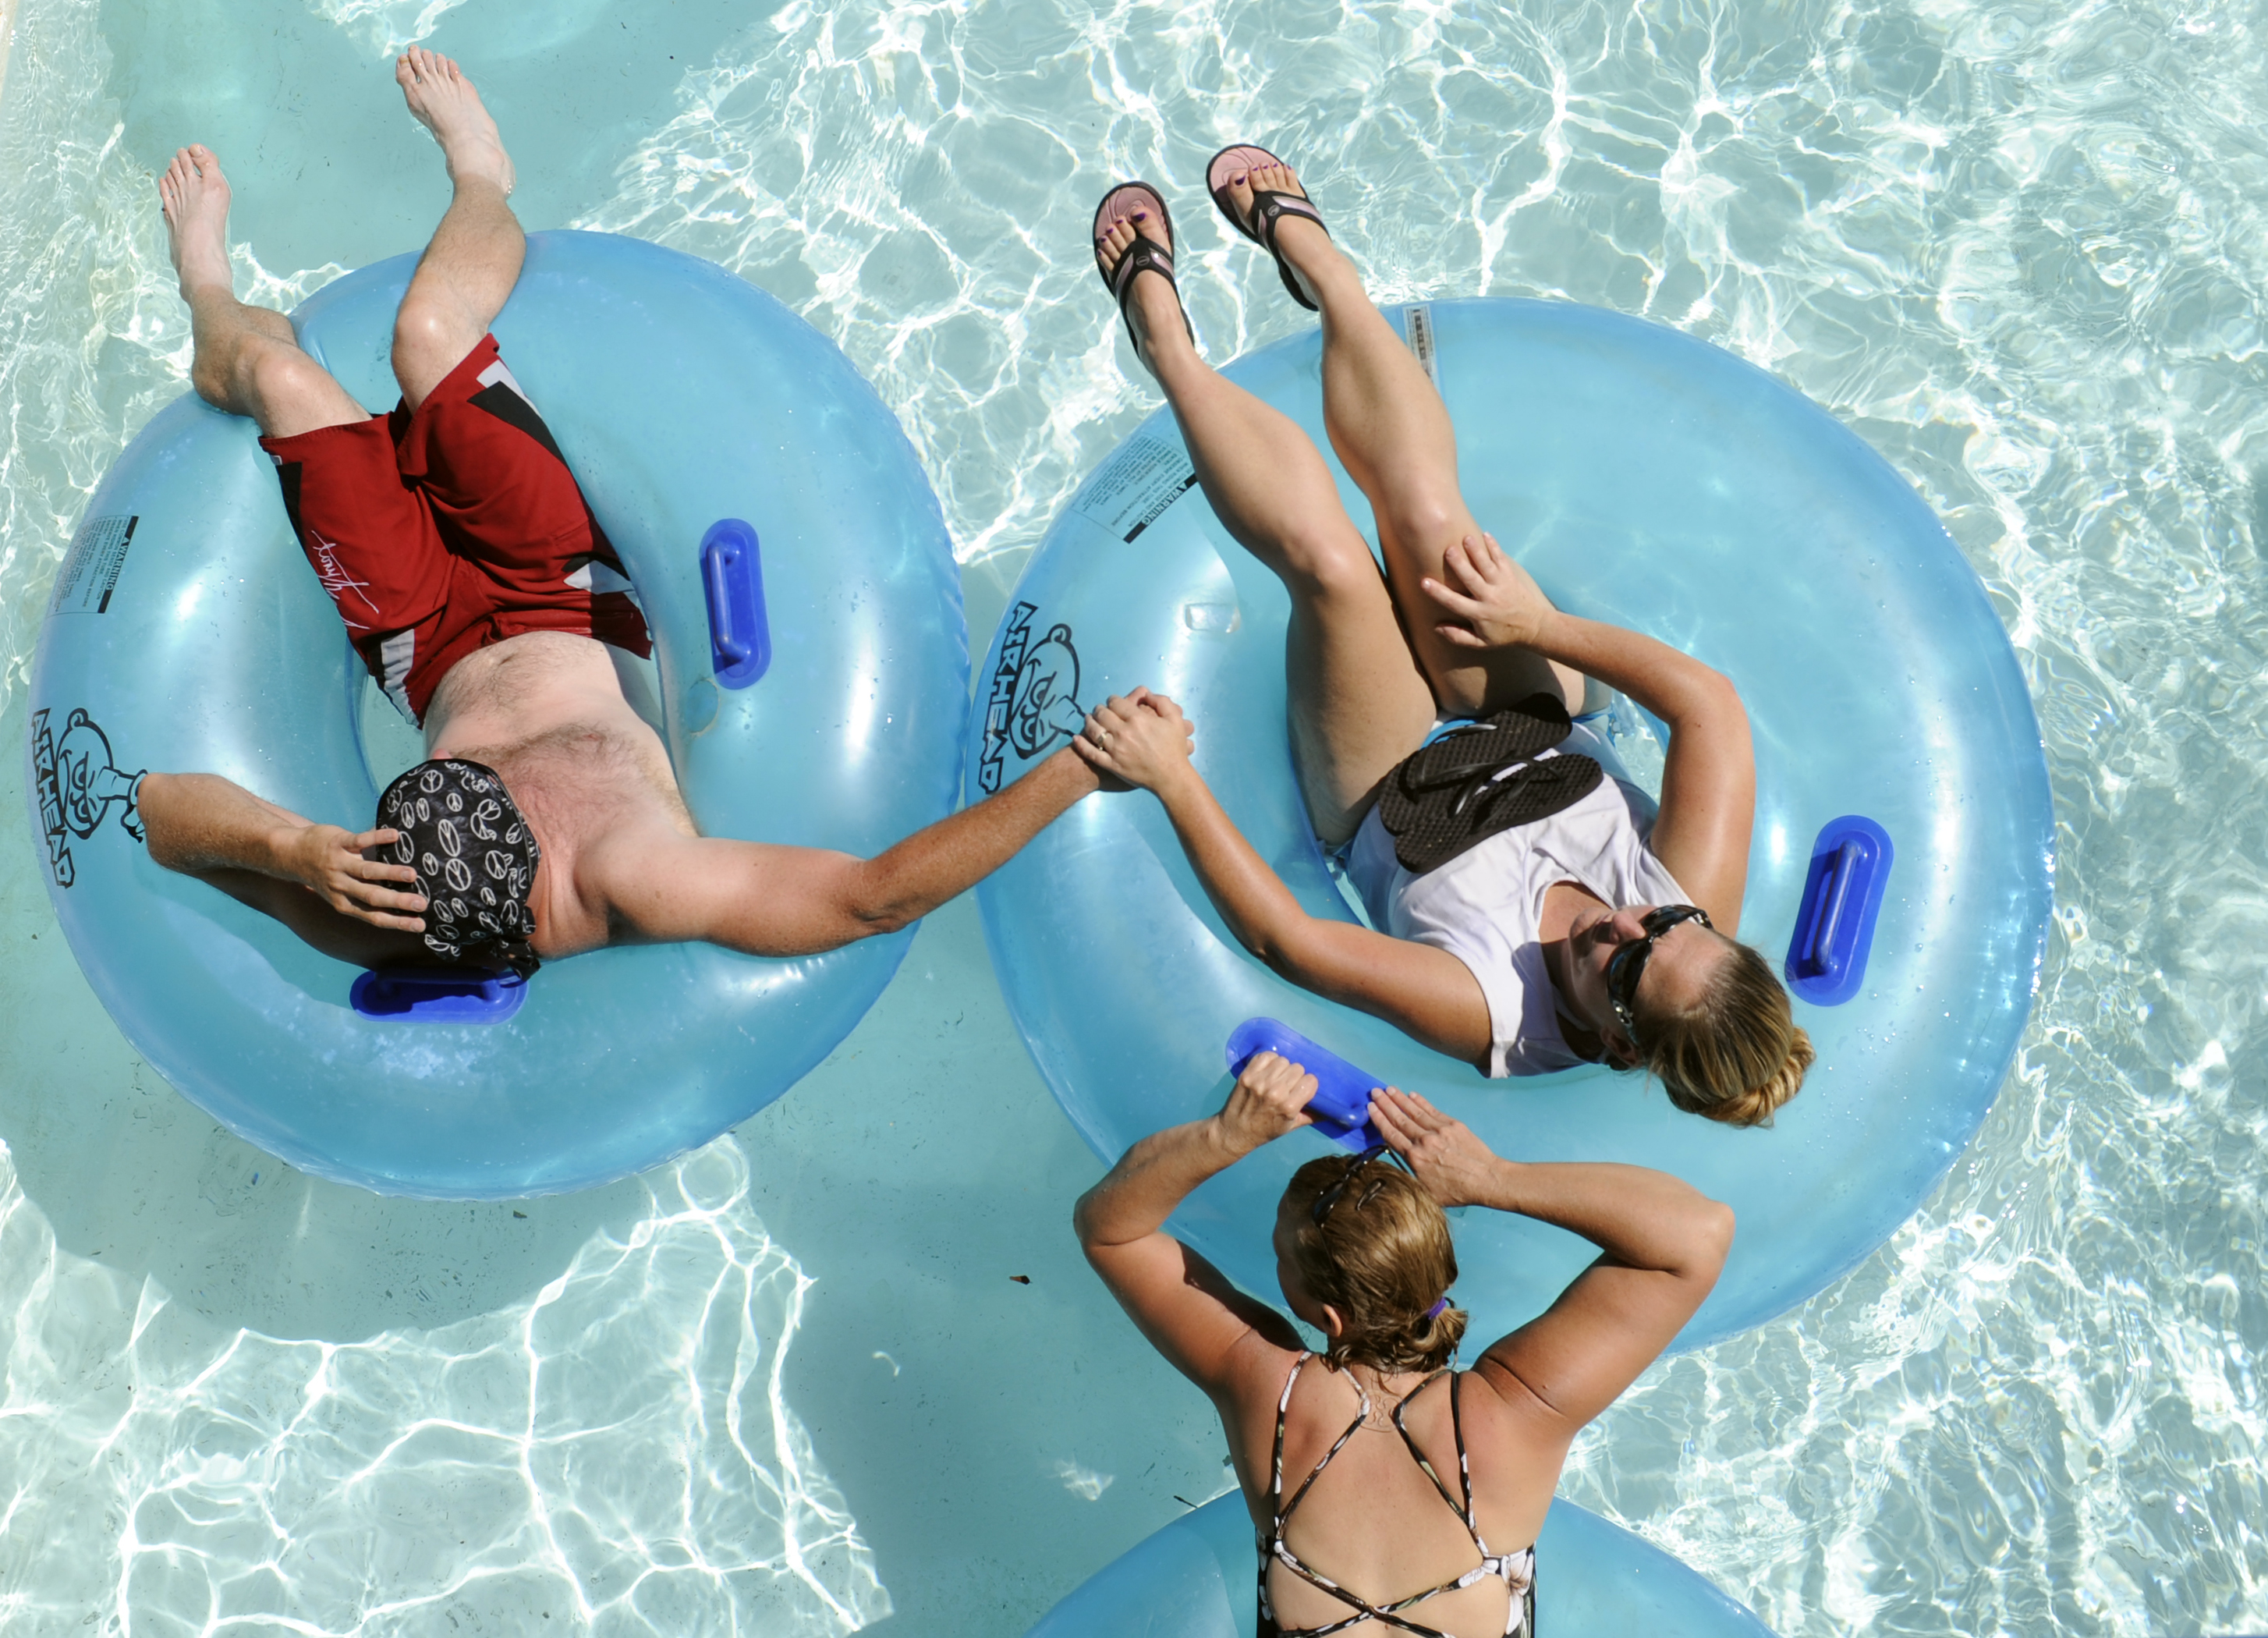 """A quiet ride for three on """"The Lazy River"""". Labor Day is the final day of the 2011 season for Water World in Thornton. Thousands took advantage of the sunny weather in the park for the final splash of the summer. Joann Cortez, spokesperson for the park, s"""